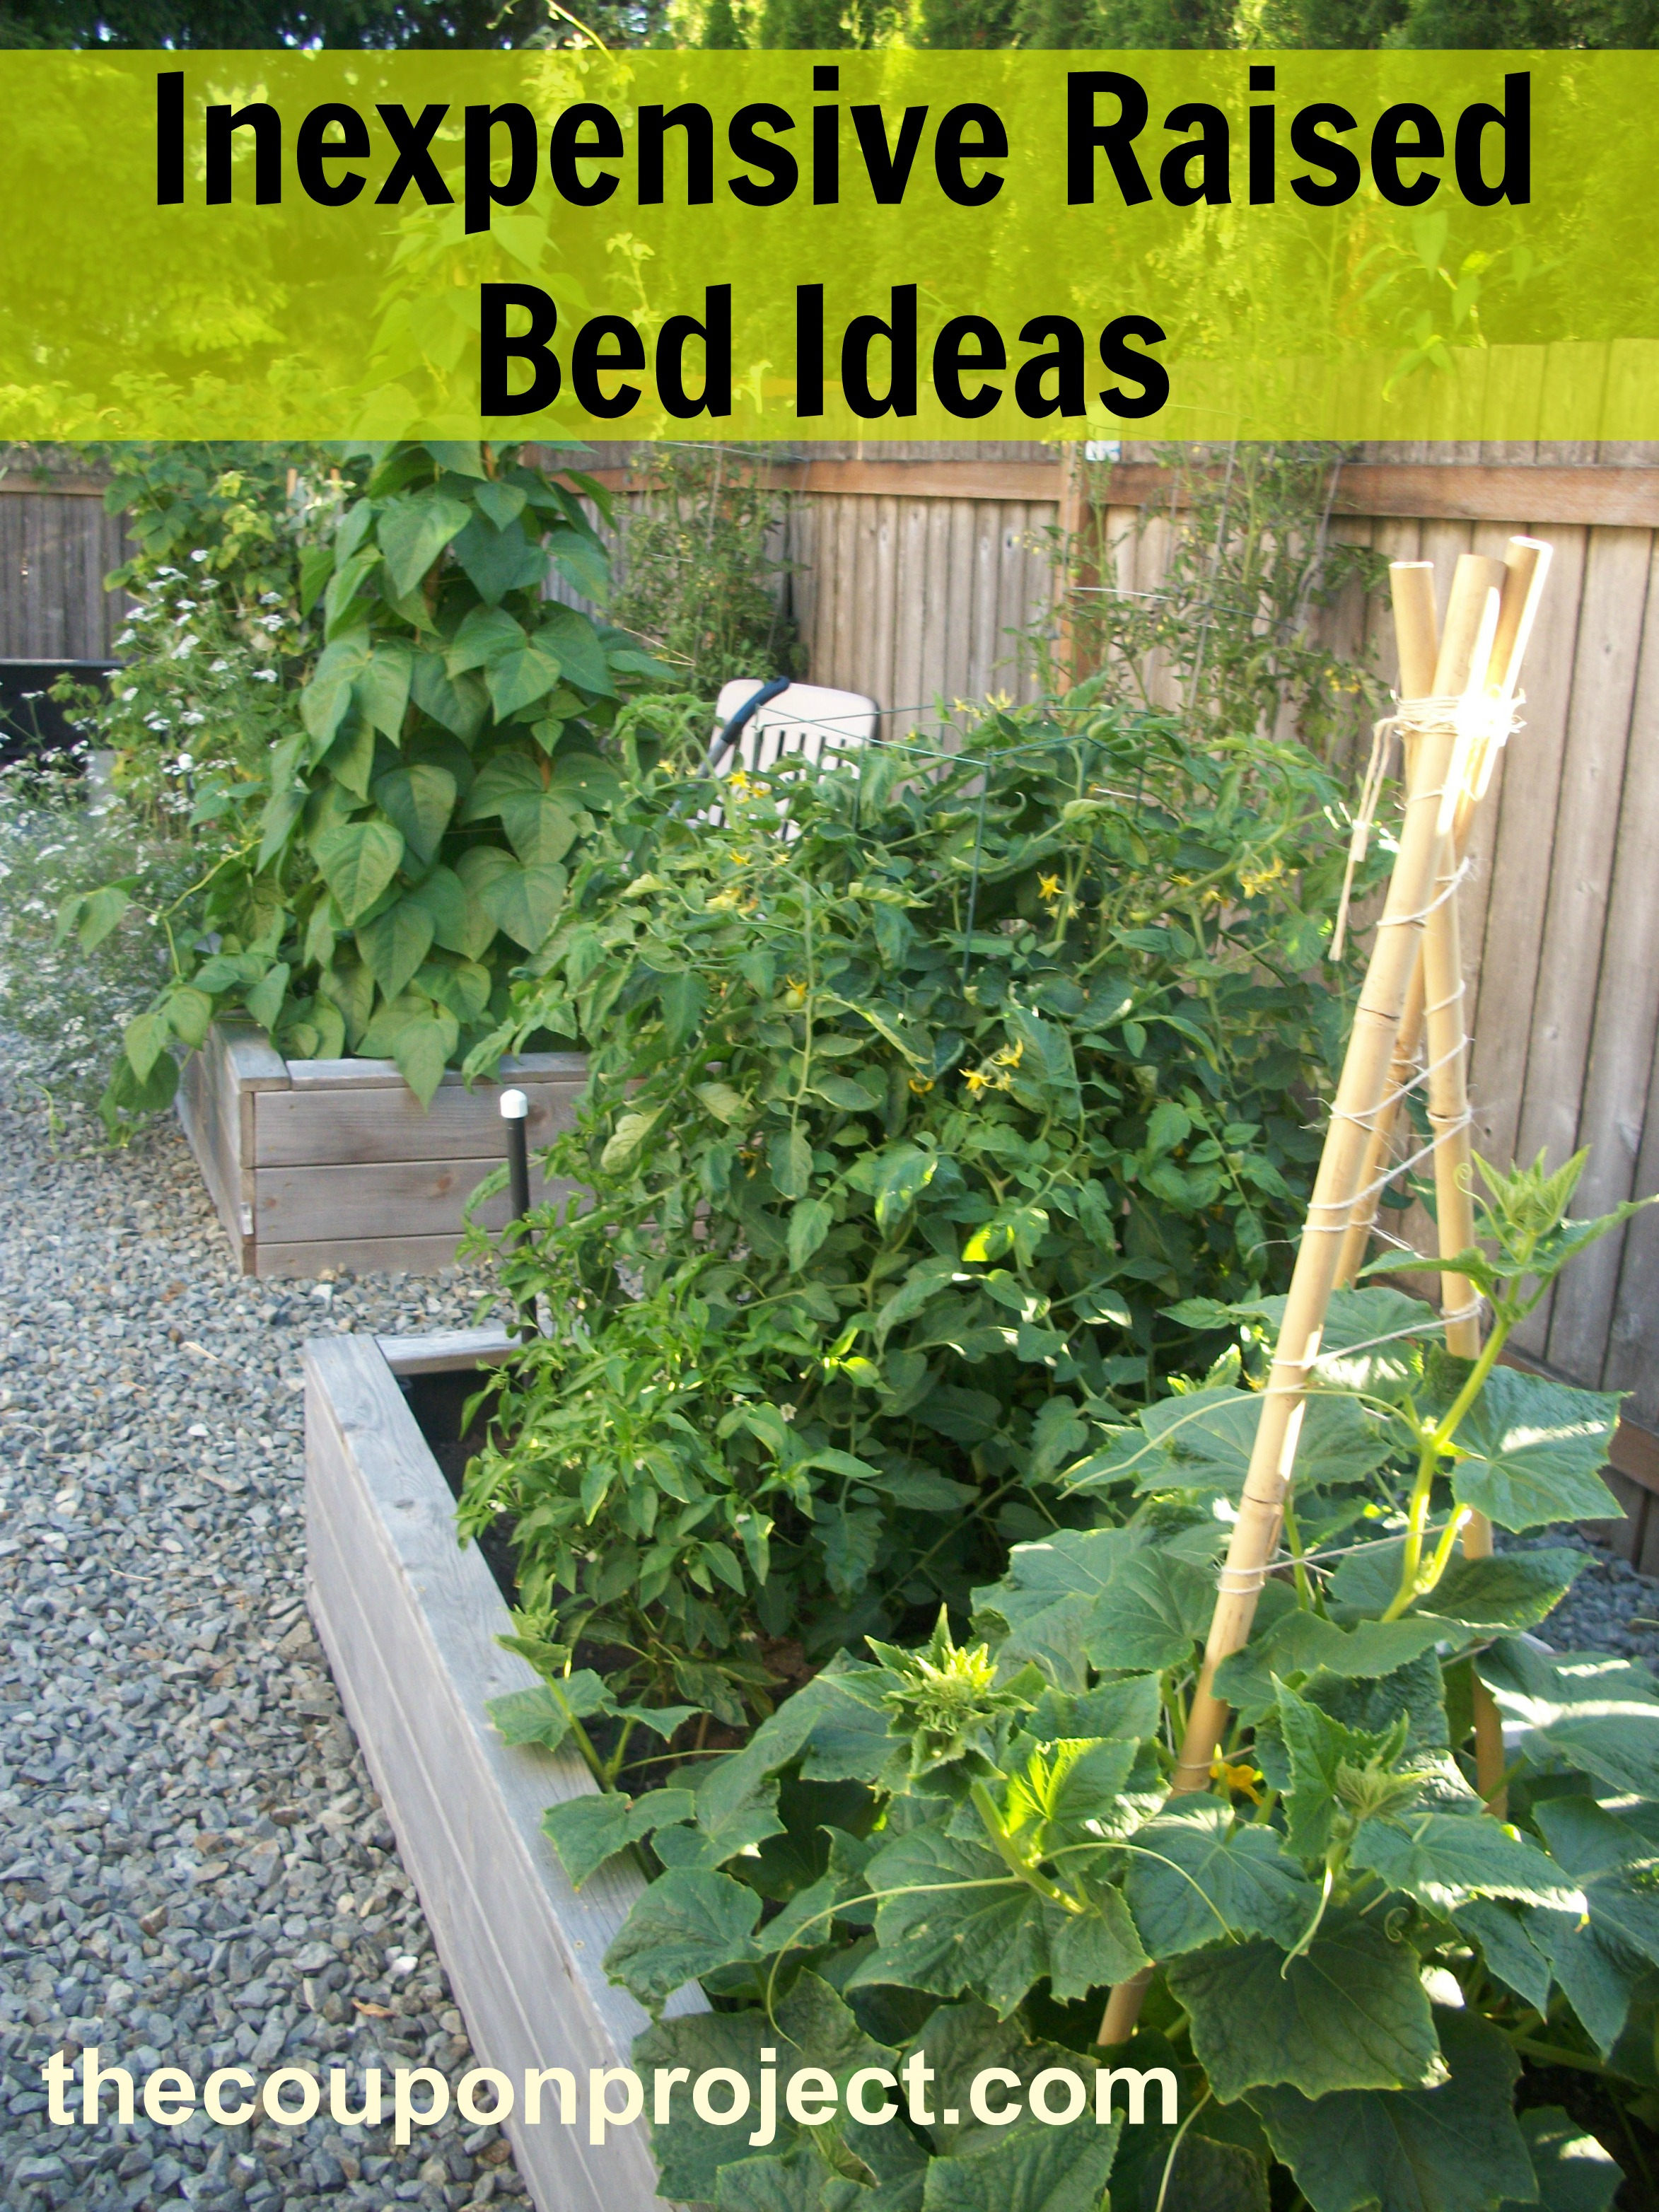 Inexpensive Garden Ideas exterior inexpensive landscape ideas stunning landscape ideas Frugal Gardening Four Inexpensive Raised Bed Ideas